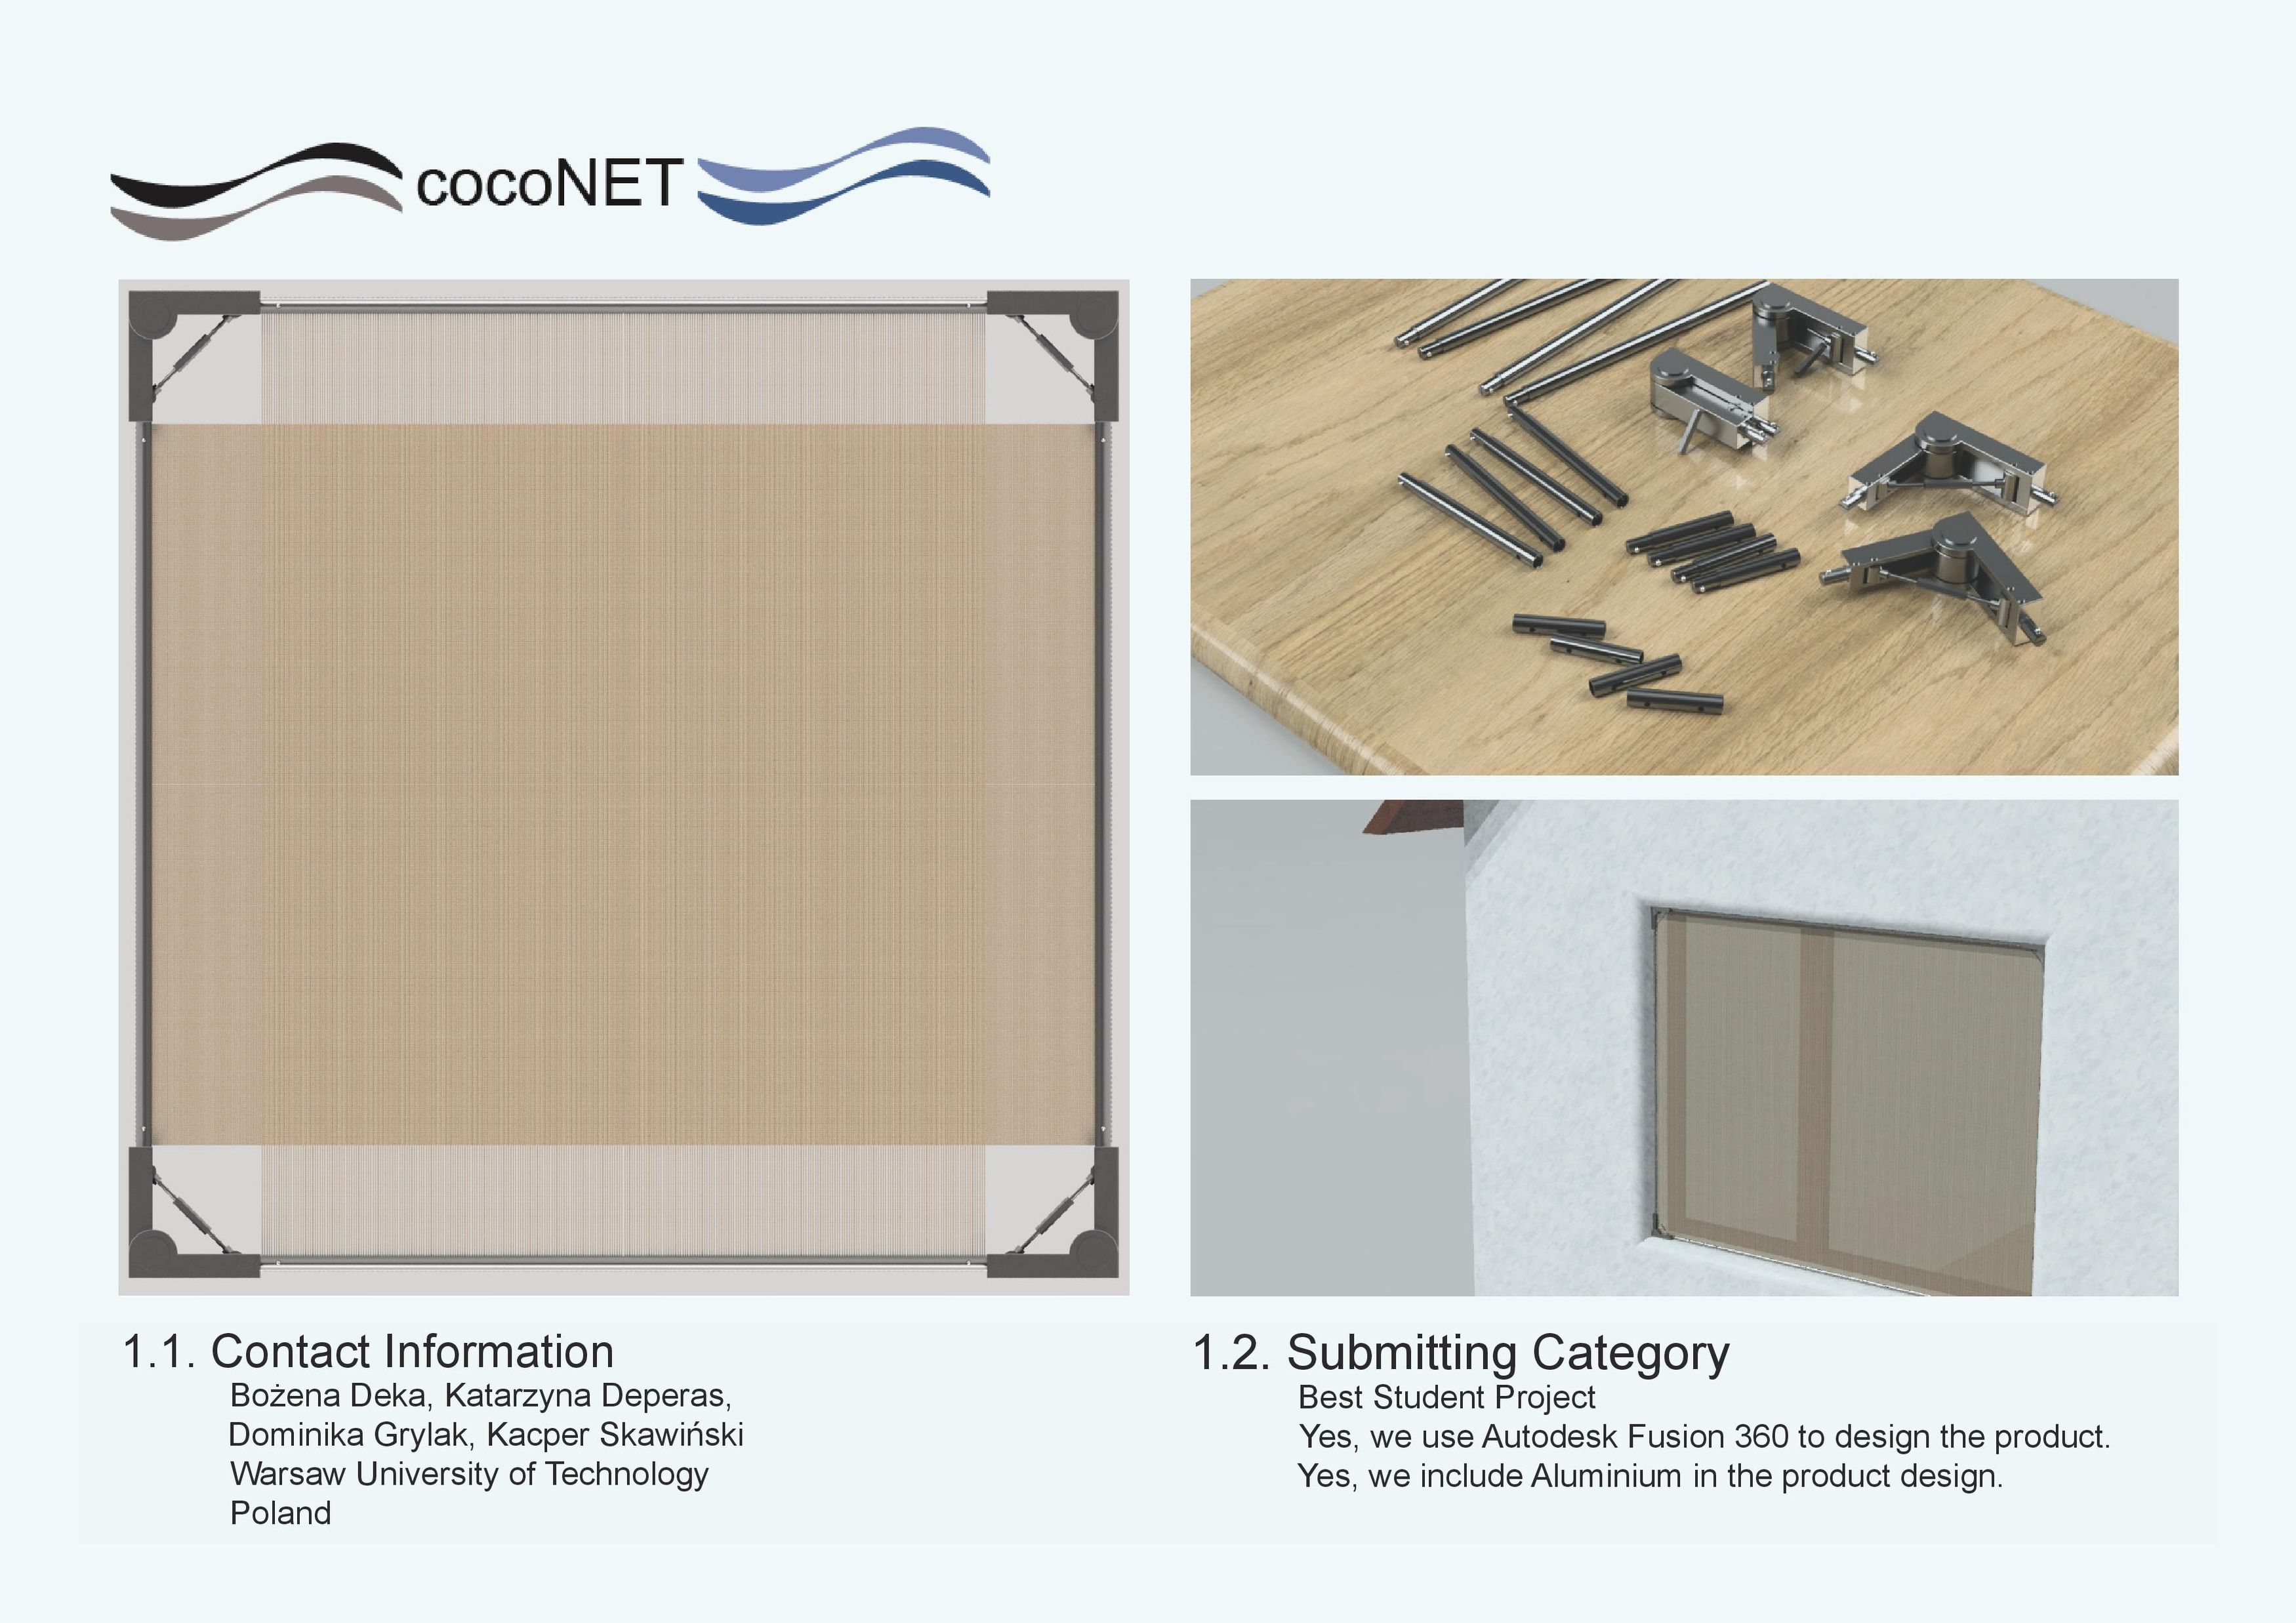 Coconet-page-001-3500-3500